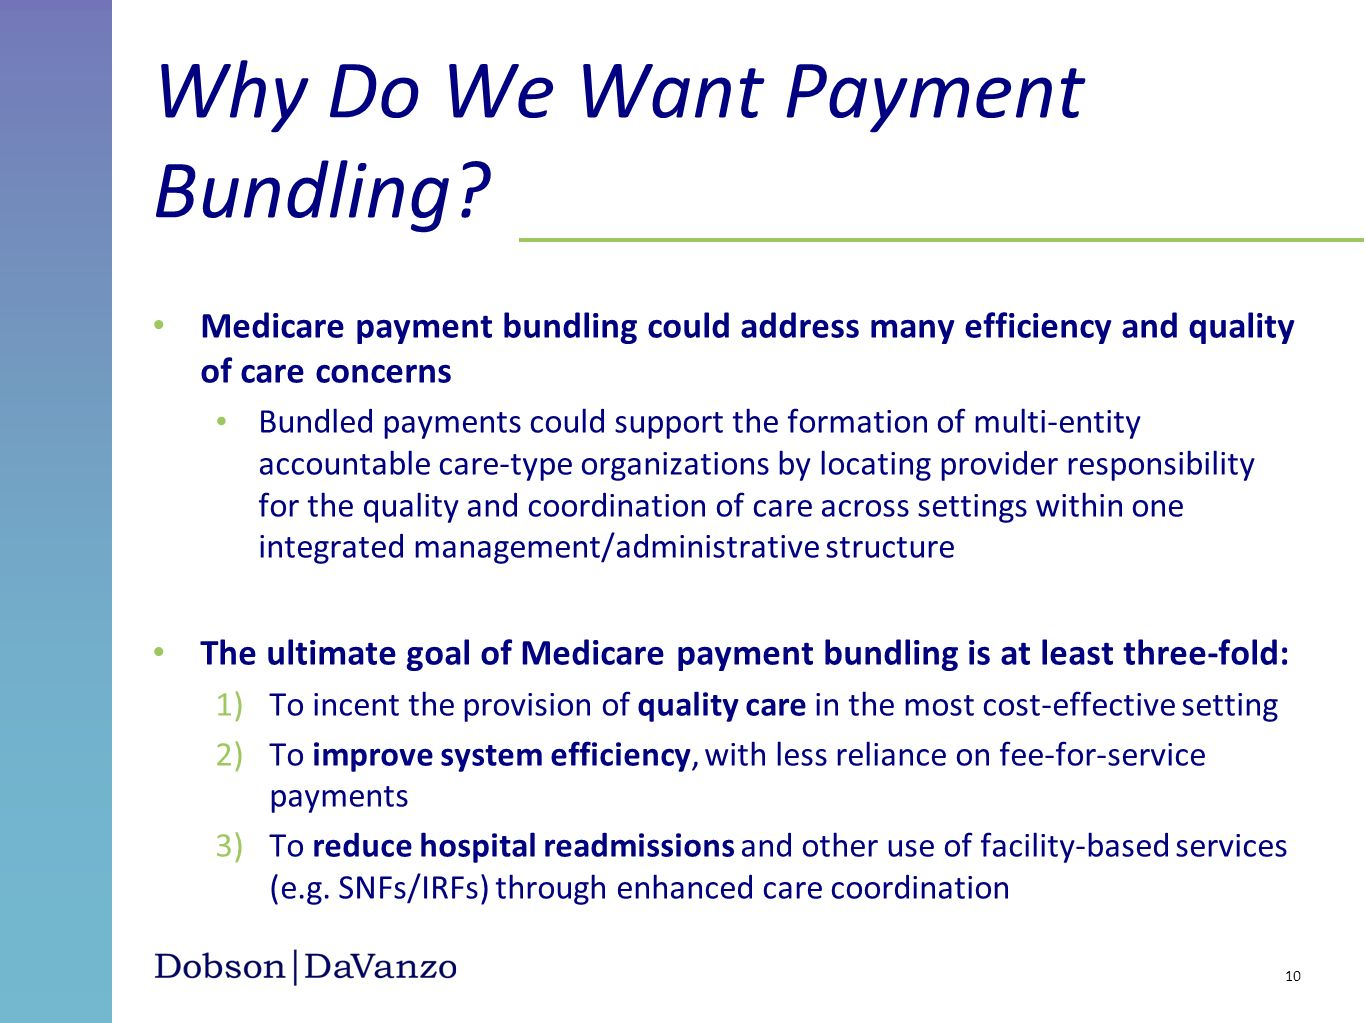 Why Do We Want Payment Bundling